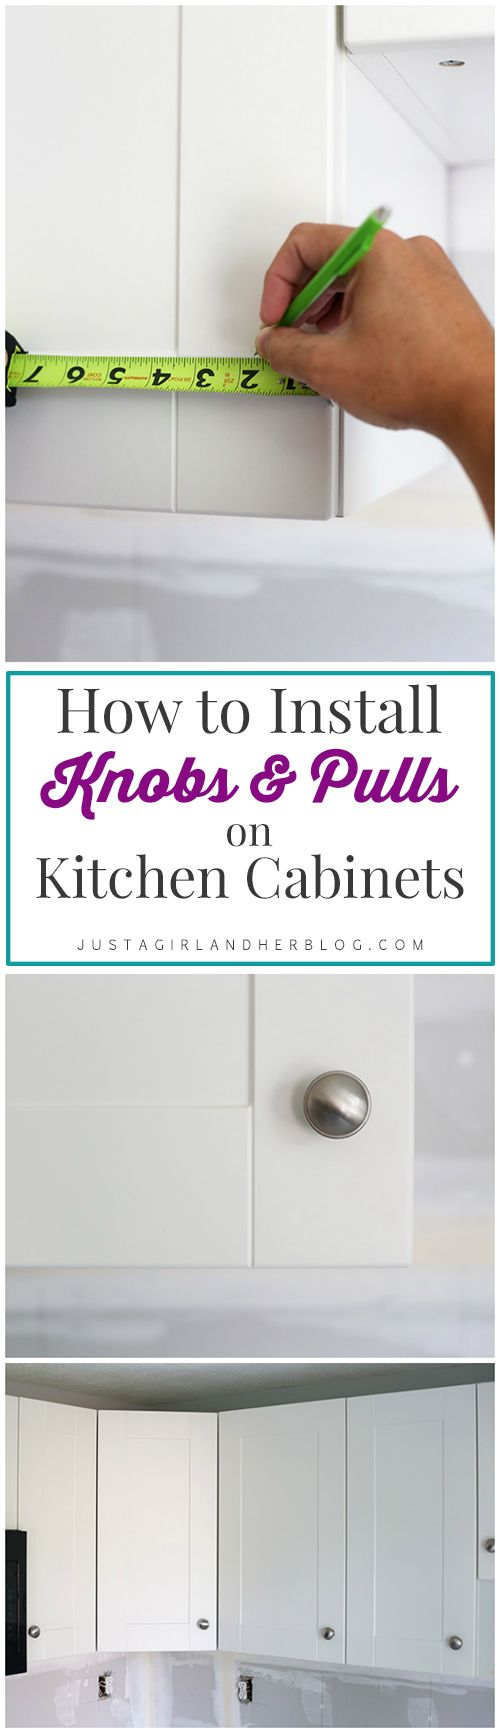 Best 25+ Kitchen cabinet knobs ideas on Pinterest | Cabinet knobs ...